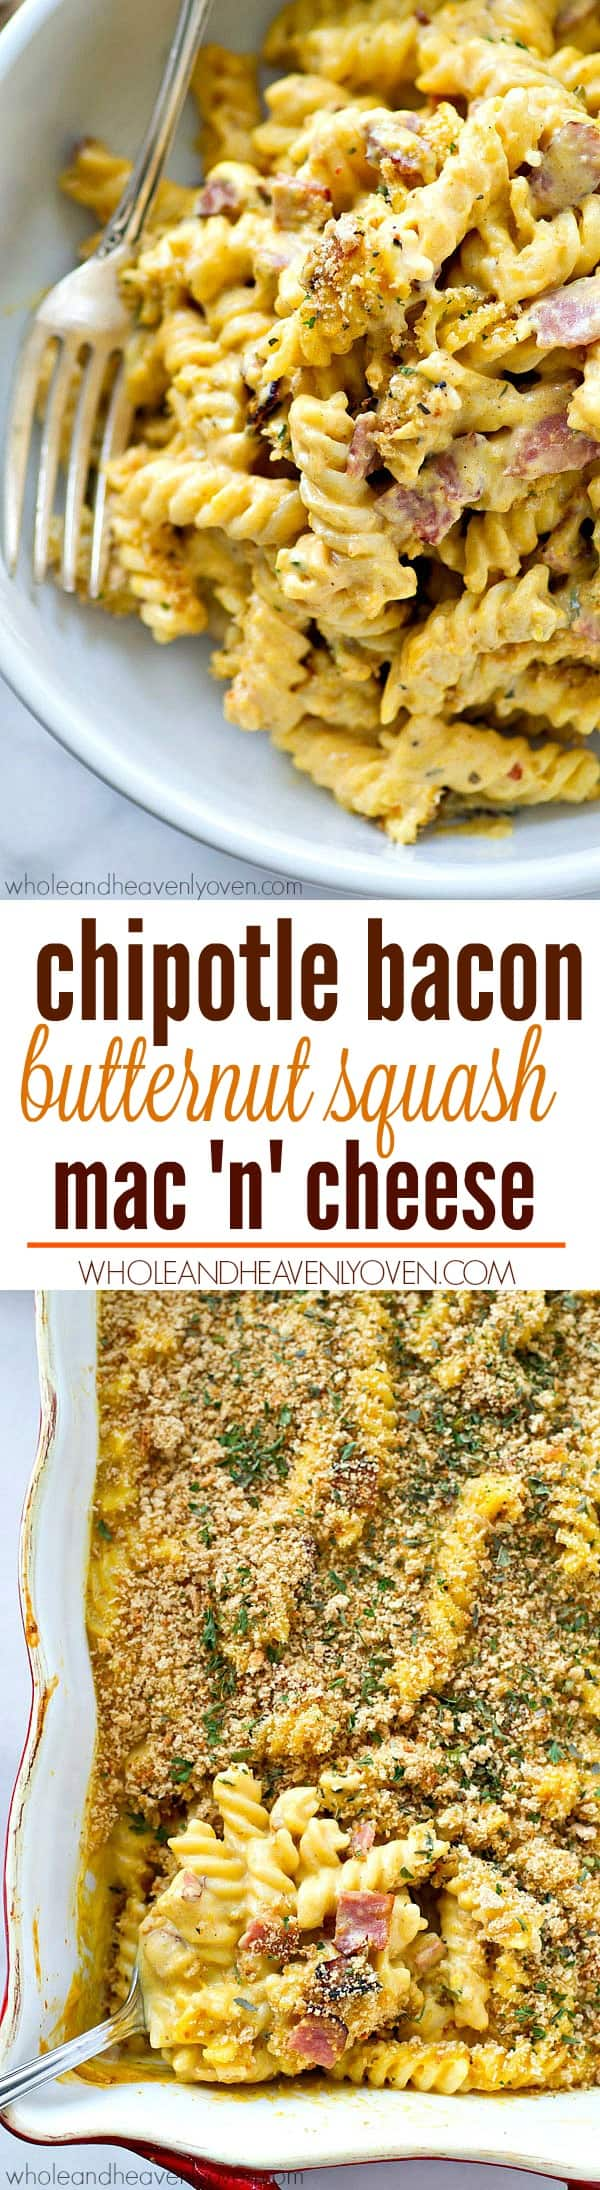 Kicked up with chipotle pepper and bacon and made extra-creamy from butternut squash, this mac 'n' cheese will soon become your new addiction!